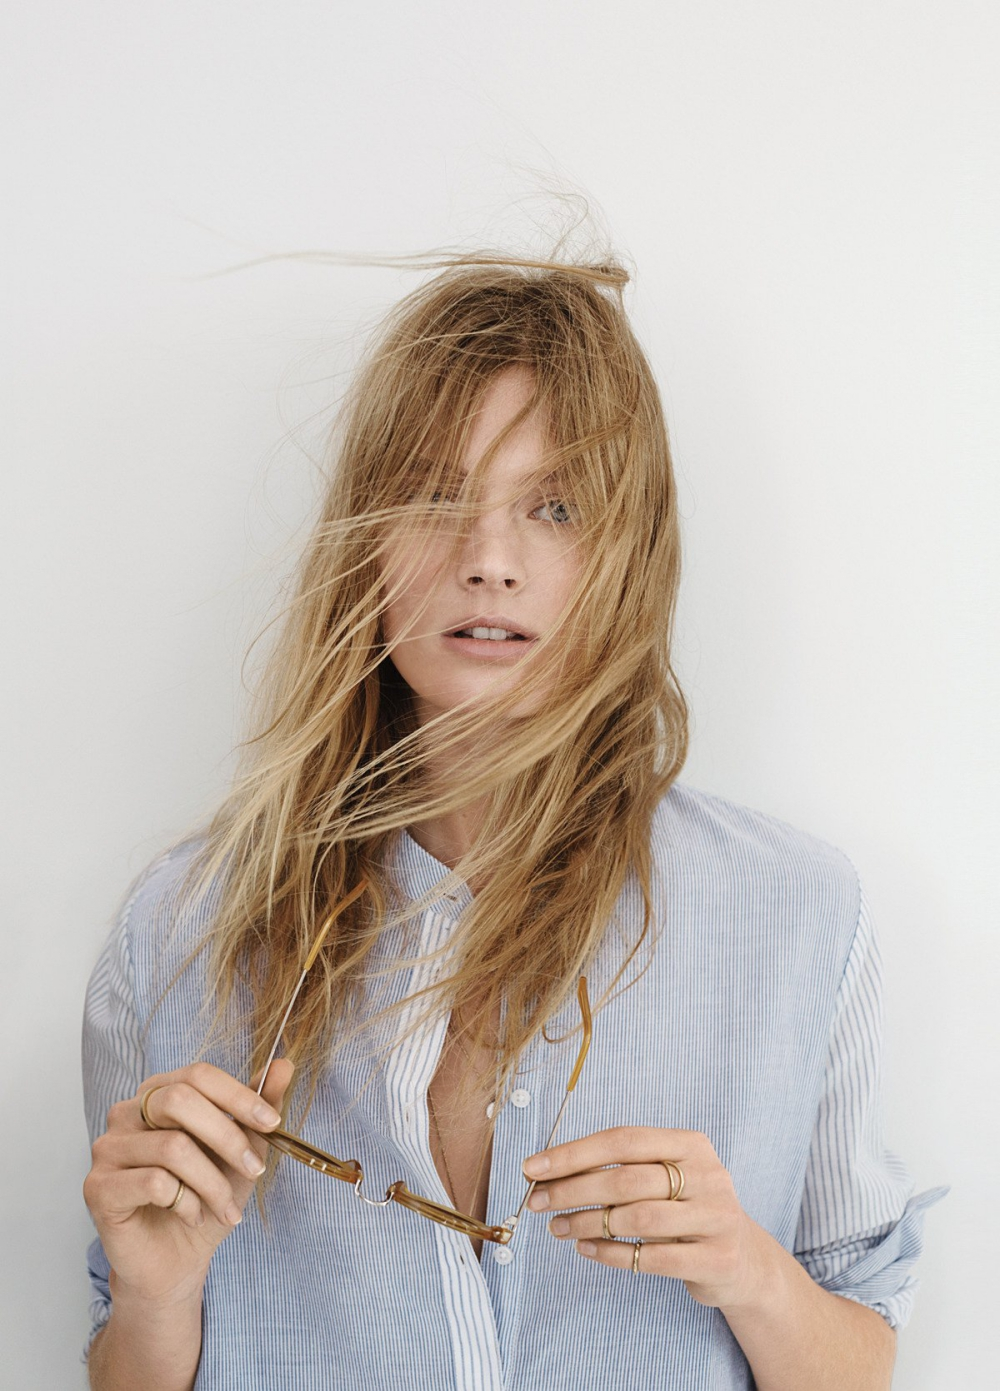 16-welcome-to-my-world-folkr-eye-contact-Constance-Jablonski-Madewell